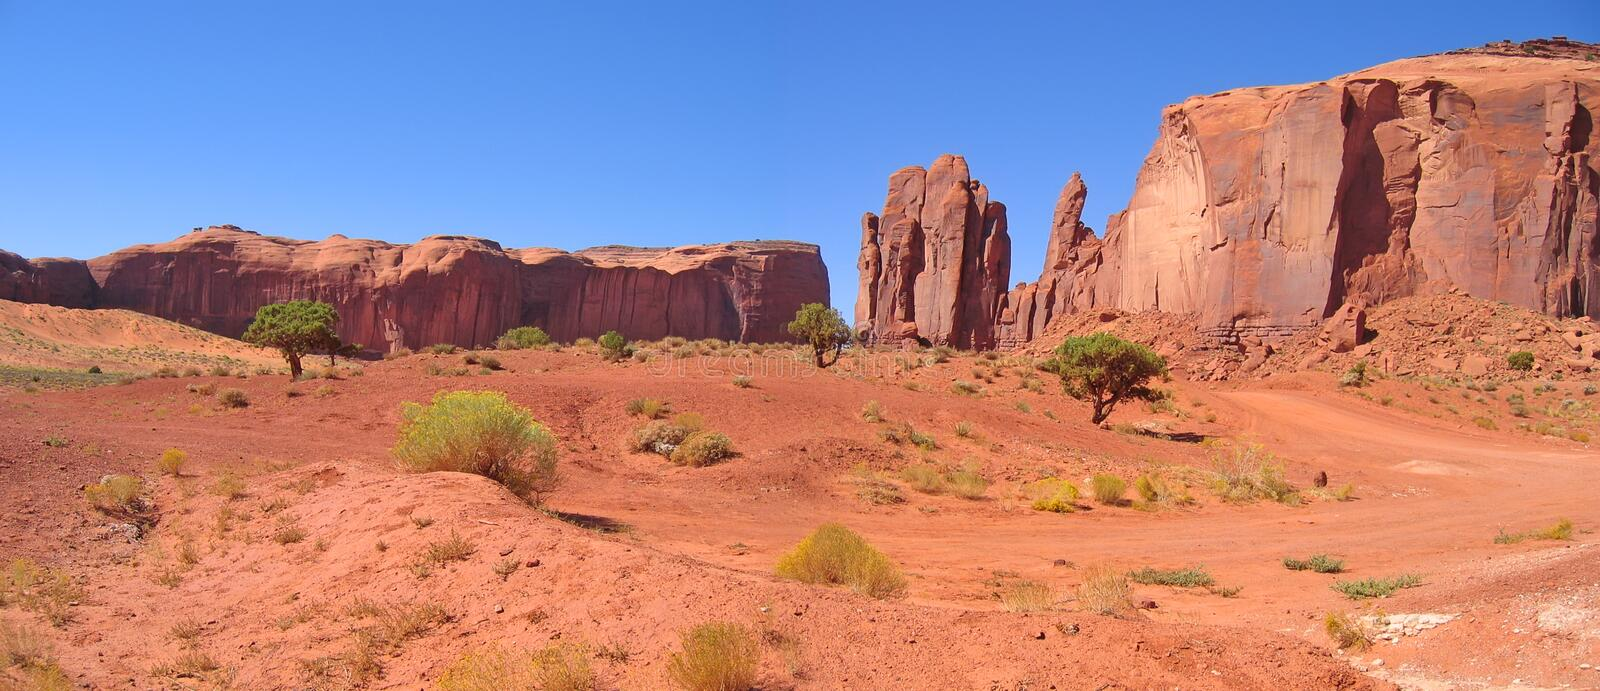 Download Desert with red rocks stock photo. Image of hilly, fair - 2351036